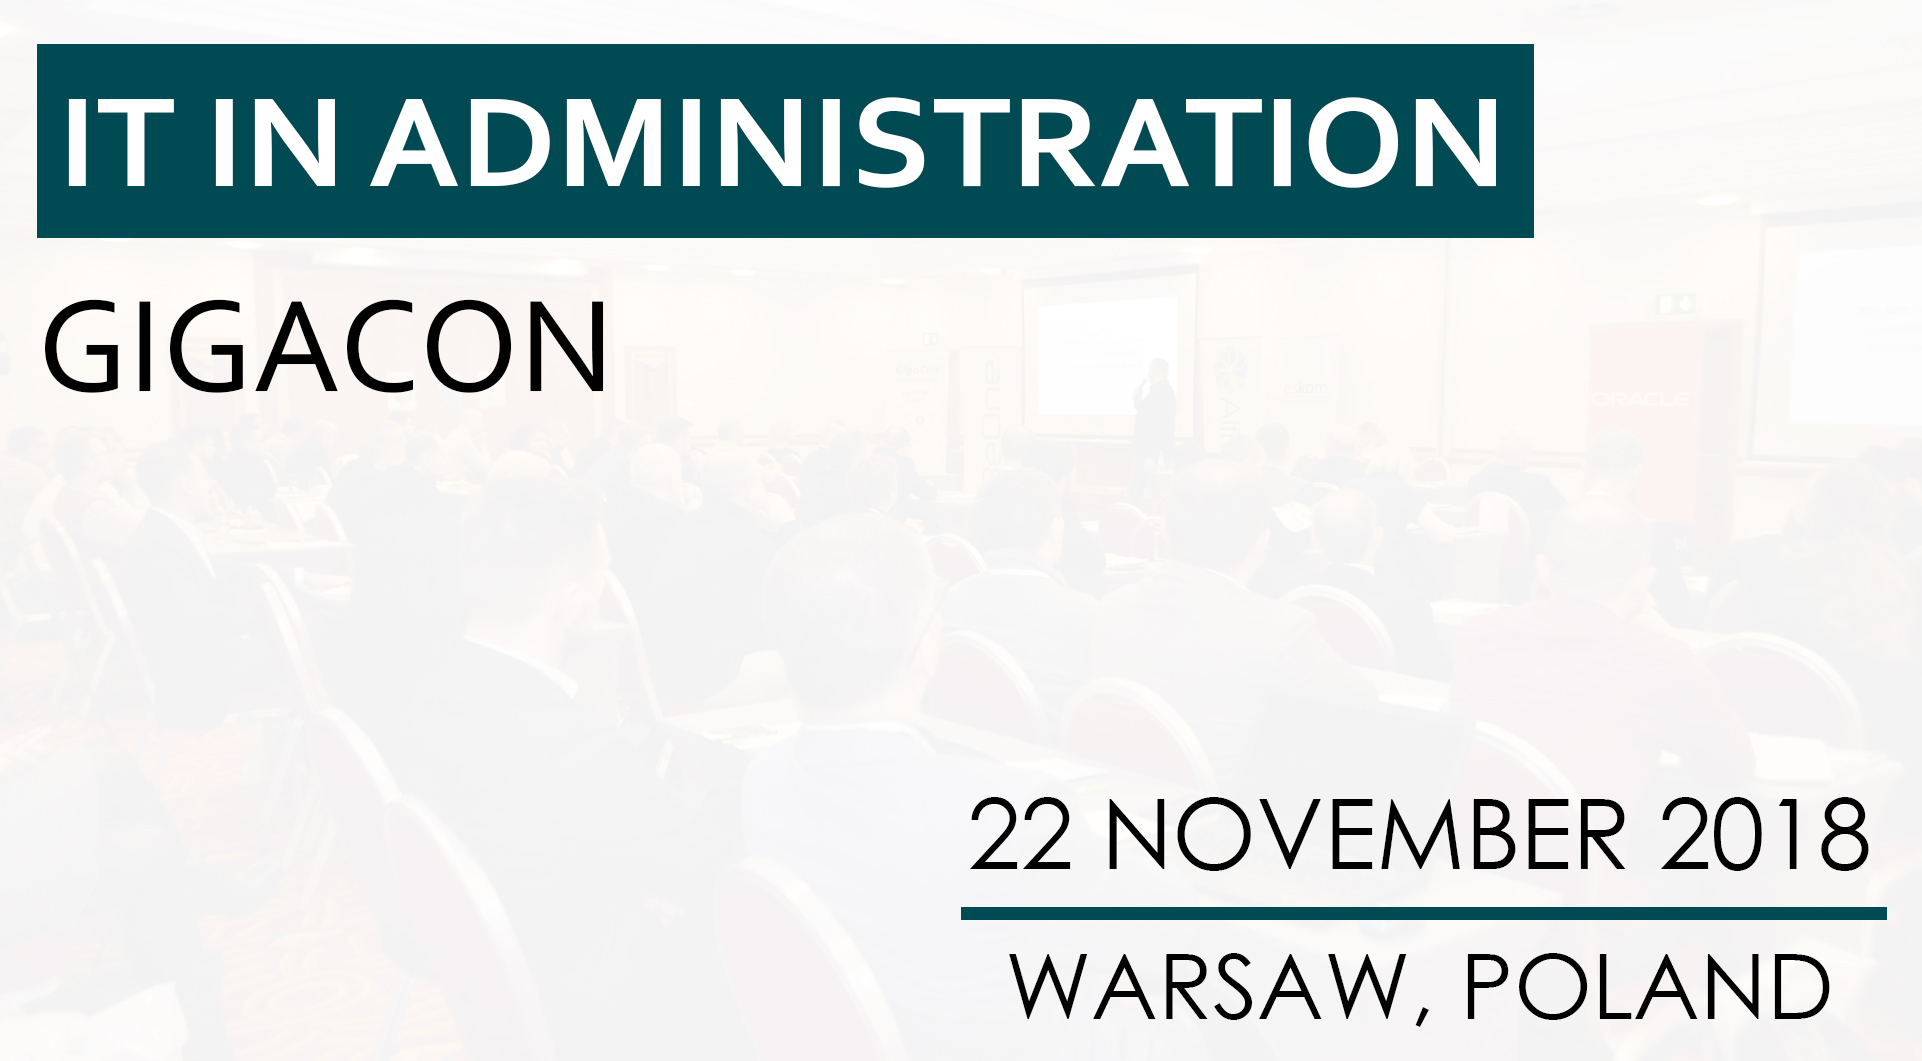 IT in administration Gigacon